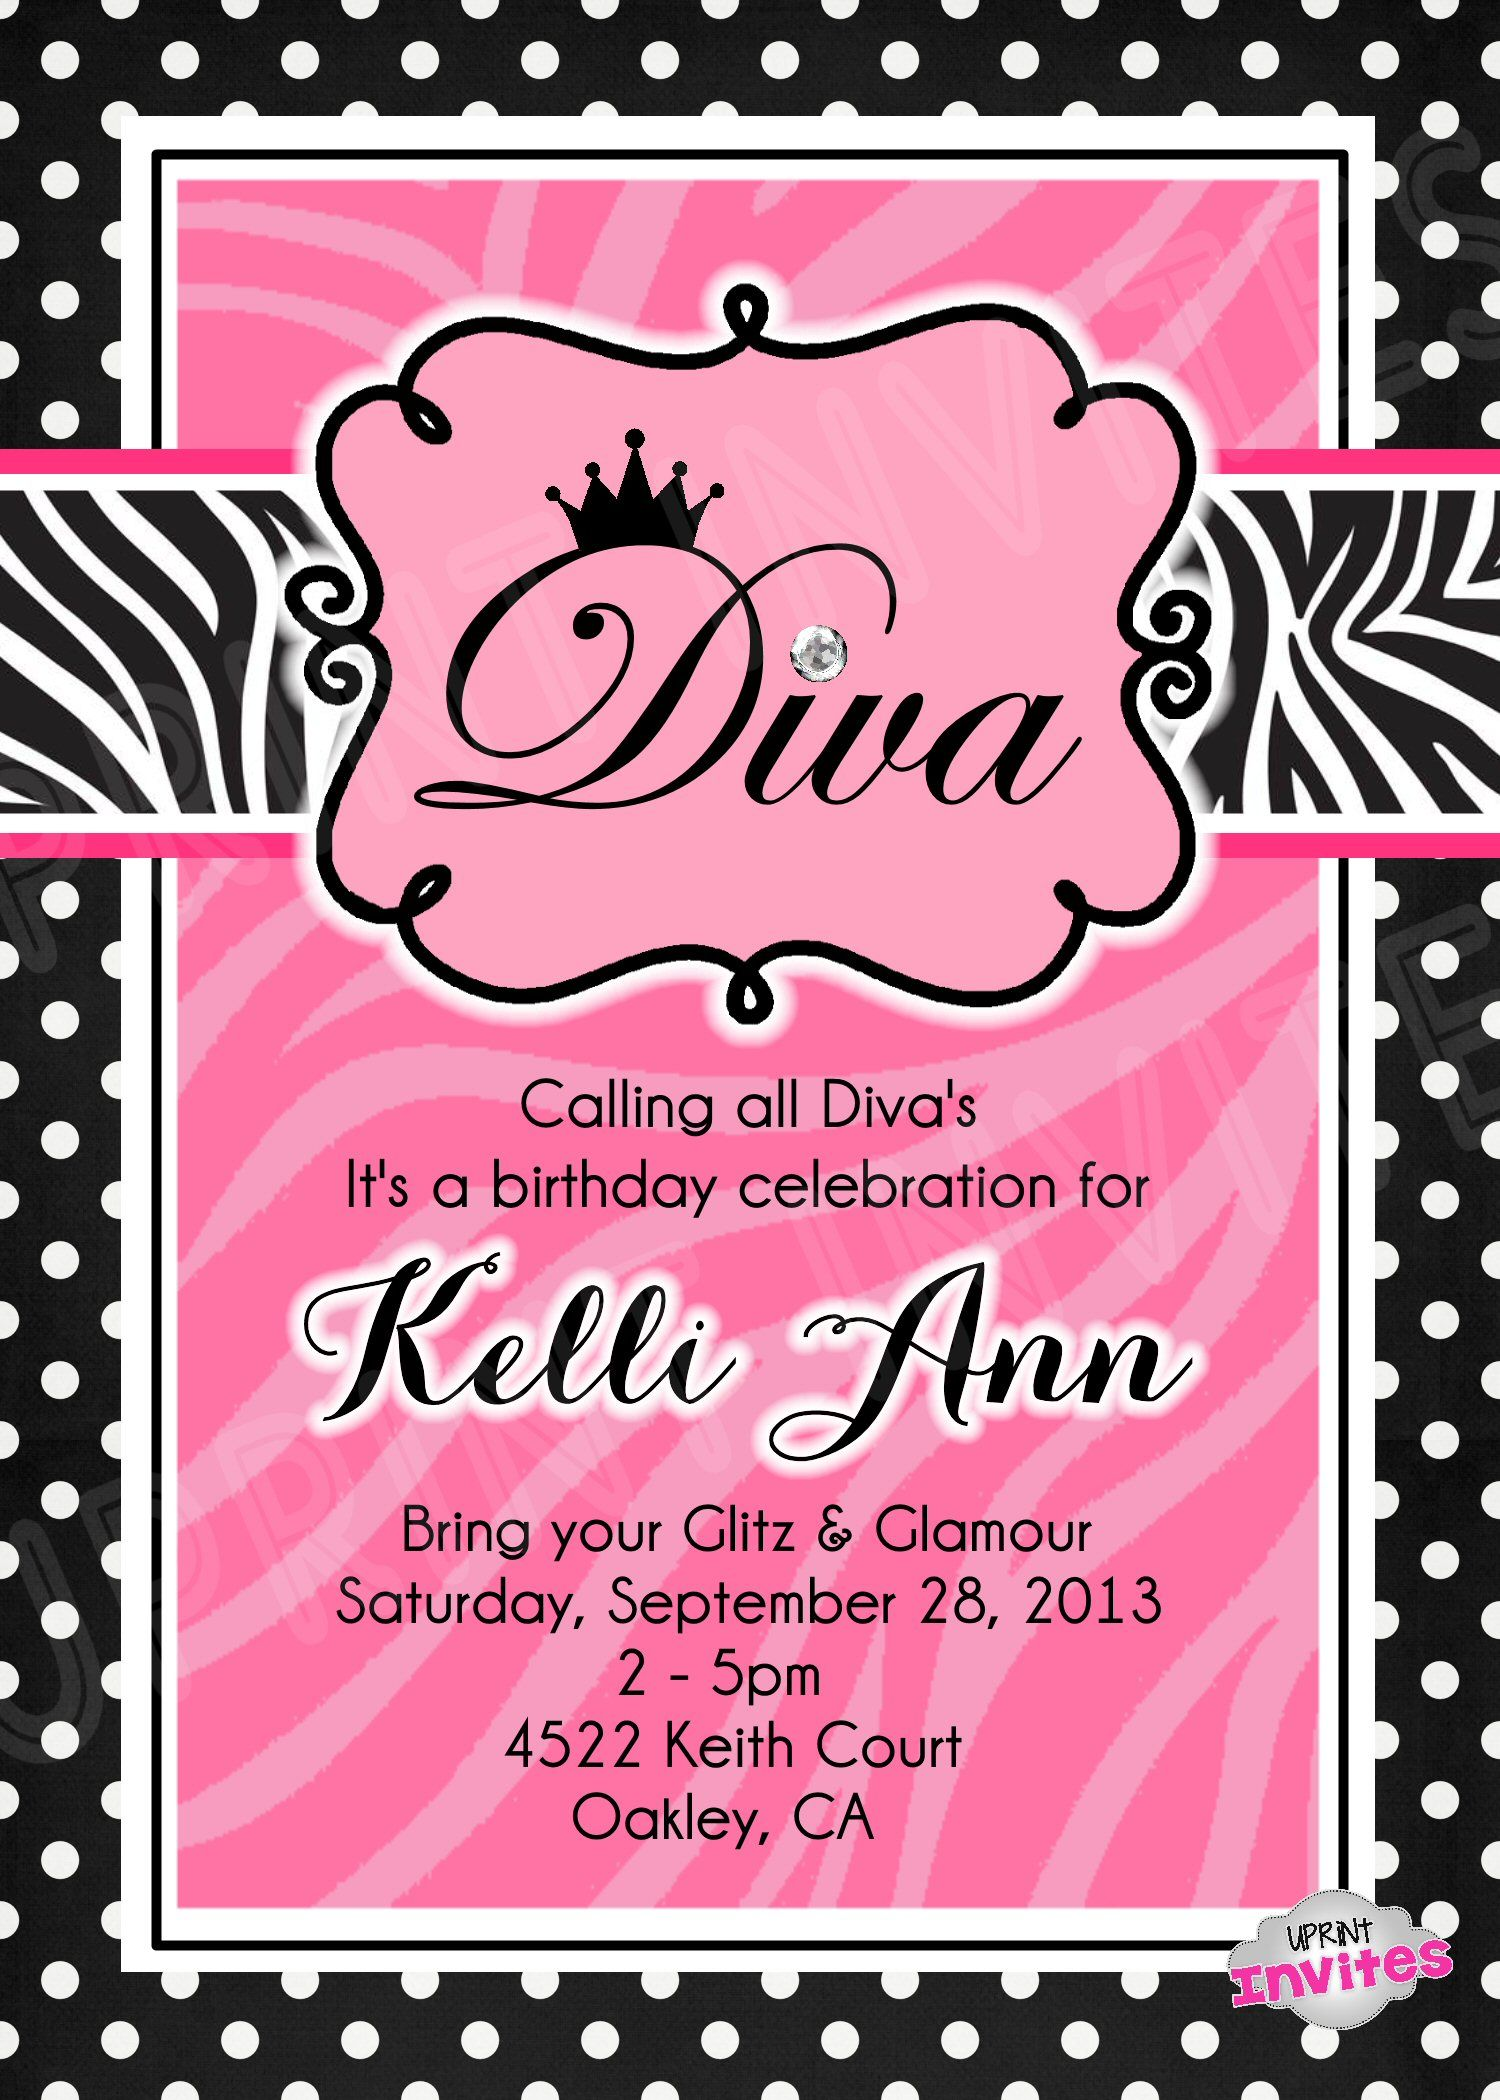 Diva Invitation Template 1500 wwwfacebookcomuprintinvitations